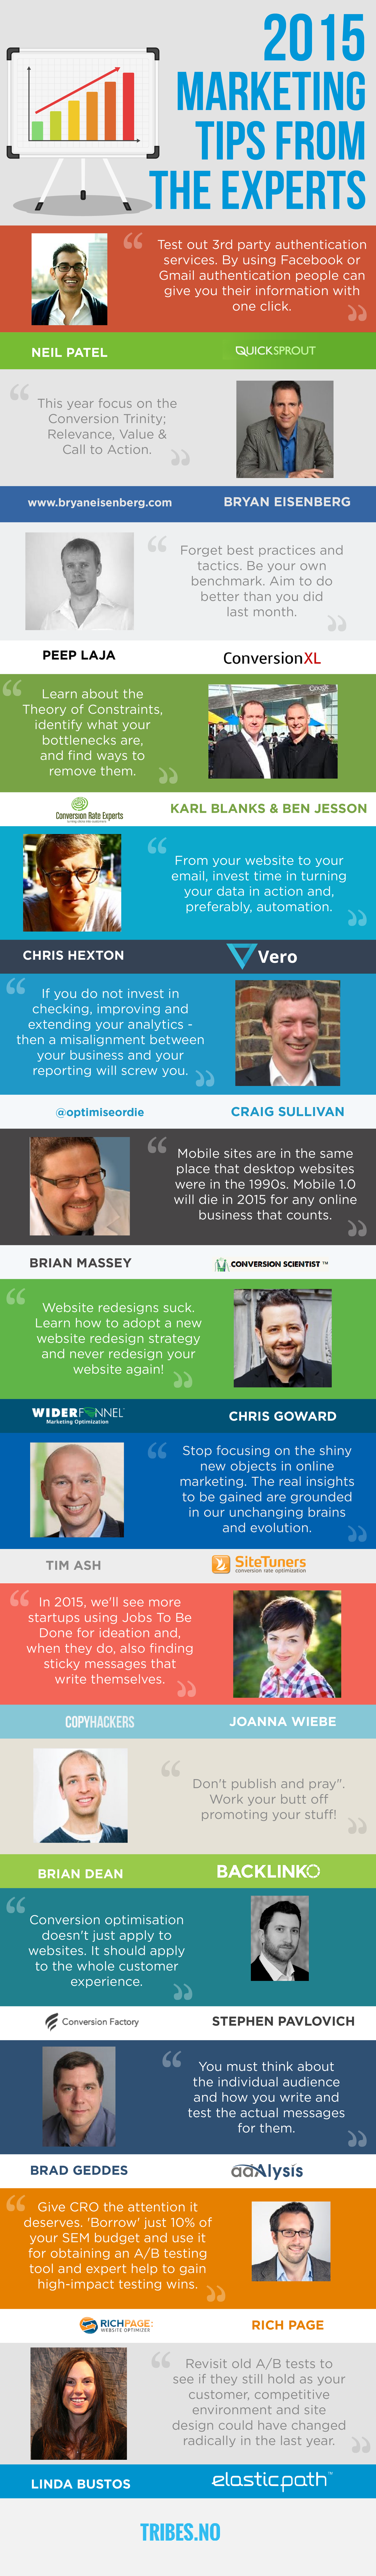 2015-marketing-tips-experts